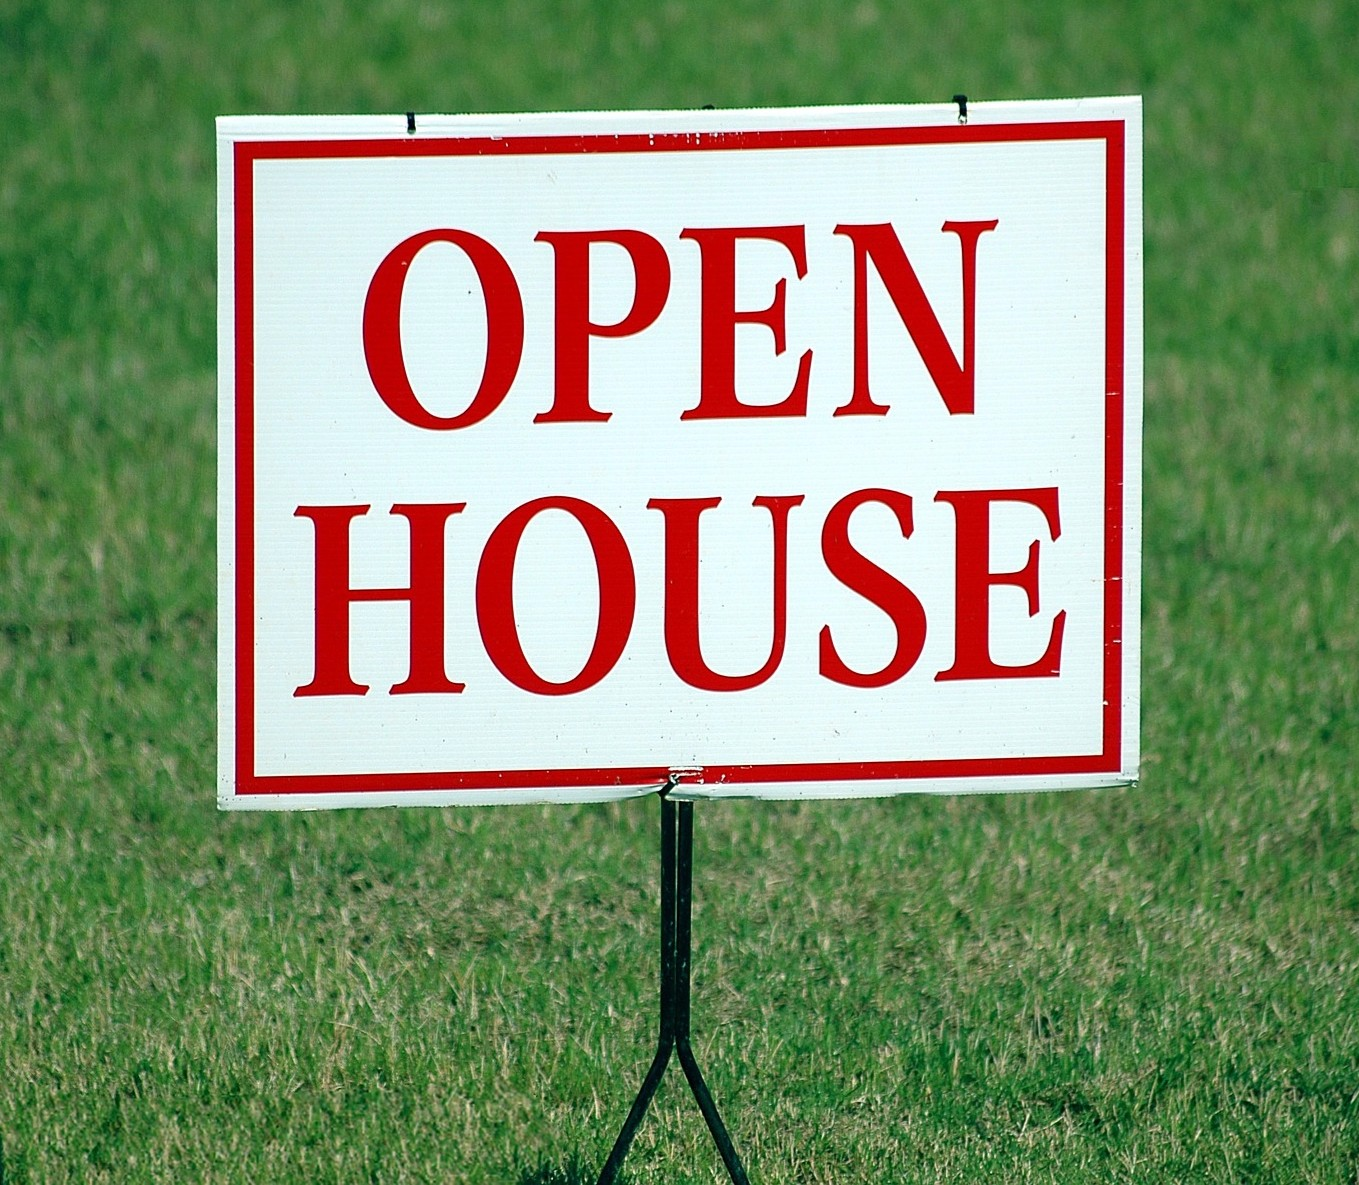 Follow these 6 helpful tips for a positive open house experience!